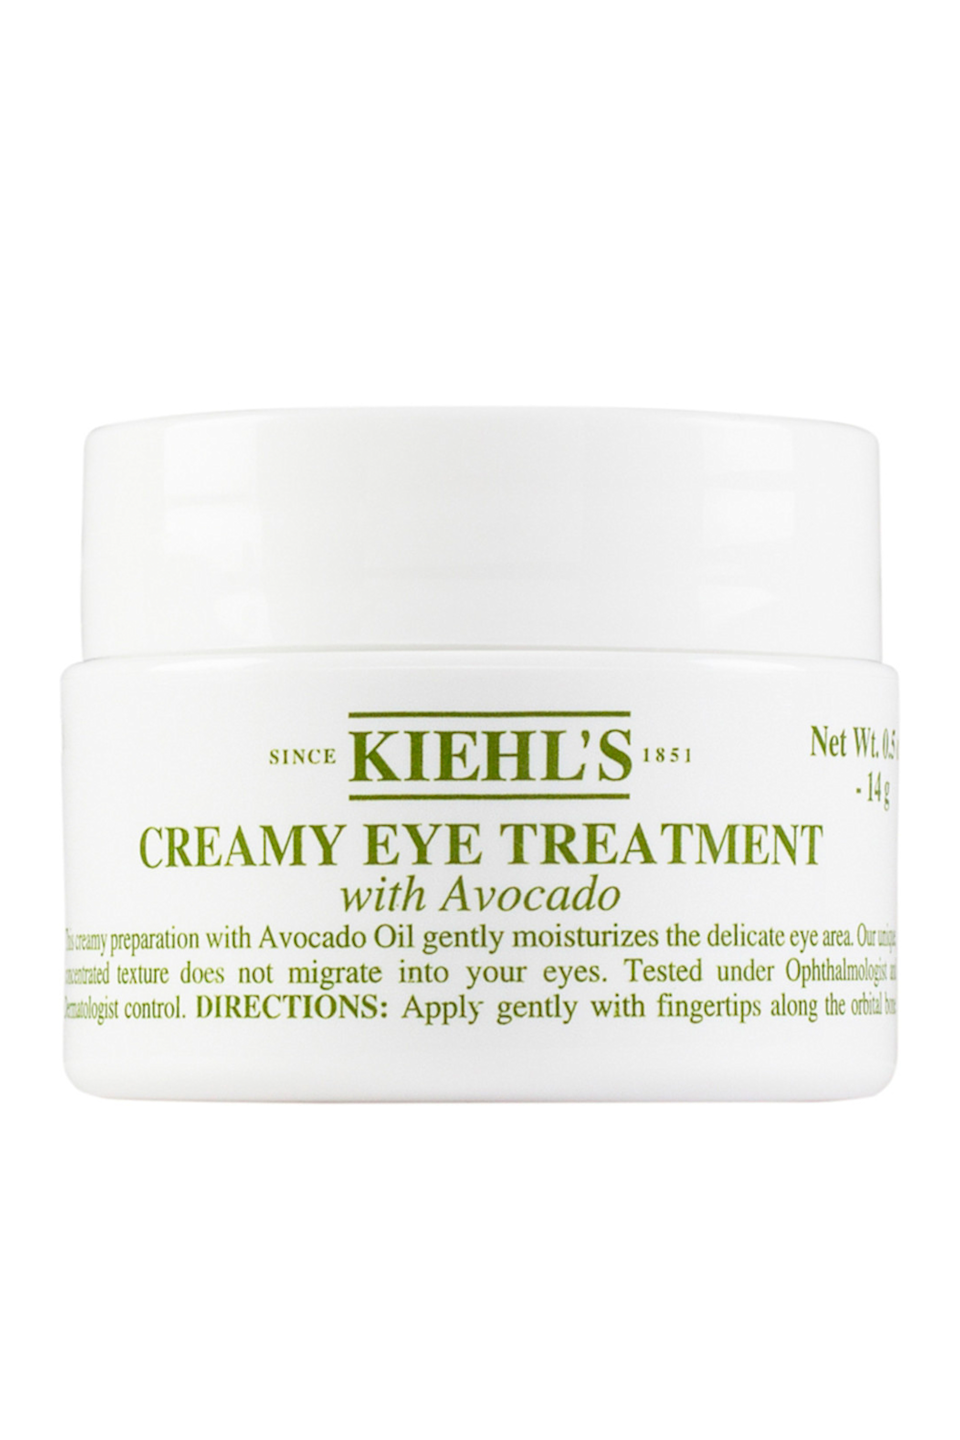 "<p><strong>Kiehl's Since 1851</strong></p><p>ulta.com</p><p><a href=""https://go.redirectingat.com?id=74968X1596630&url=https%3A%2F%2Fwww.ulta.com%2Fcreamy-eye-treatment-with-avocado%3FproductId%3Dpimprod2002975&sref=https%3A%2F%2Fwww.redbookmag.com%2Fbeauty%2Fg34807817%2Fulta-black-friday-cyber-monday-deals-2020%2F"" rel=""nofollow noopener"" target=""_blank"" data-ylk=""slk:Shop Now"" class=""link rapid-noclick-resp"">Shop Now</a></p><p><strong><del>$50</del> $25</strong></p><p>The hero ingredient in this eye cream is avocado oil, which helps to deeply hydrate your tired (and super-delicate) under-eye area. Shop it now and <strong>you'll save 50%</strong>.</p>"